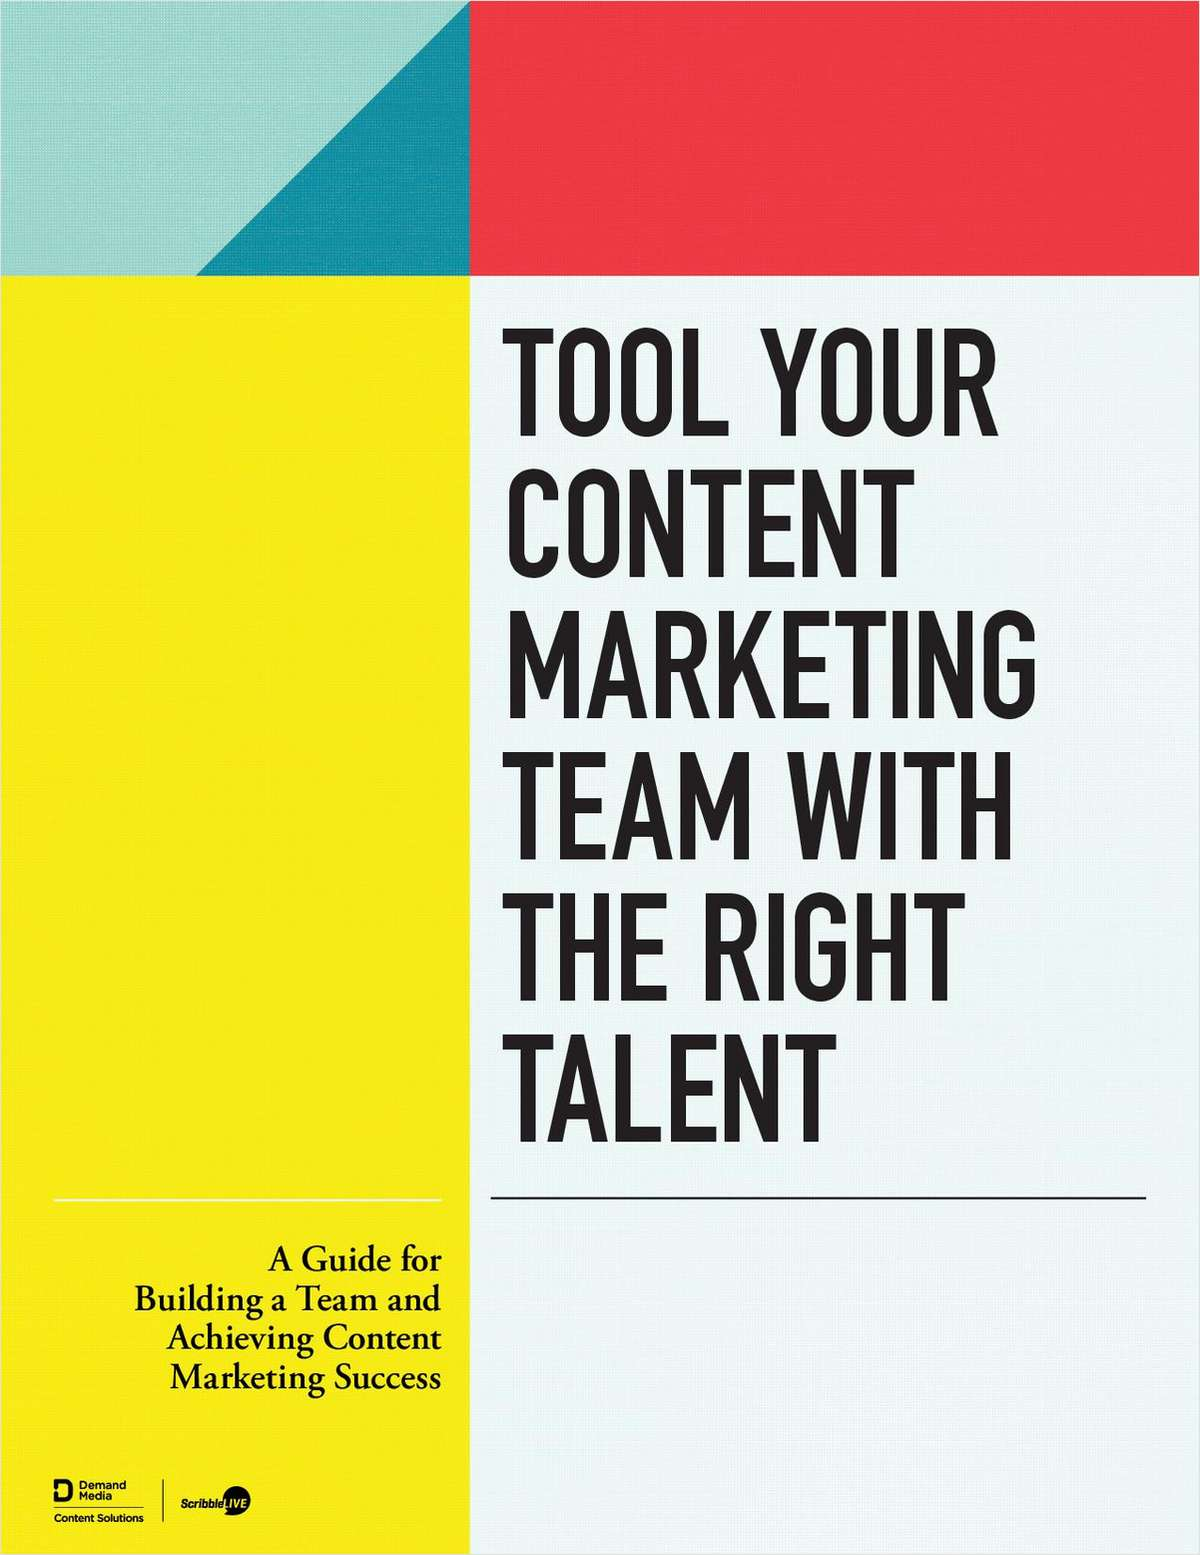 Tool Your Content Marketing Team with the Right Talent